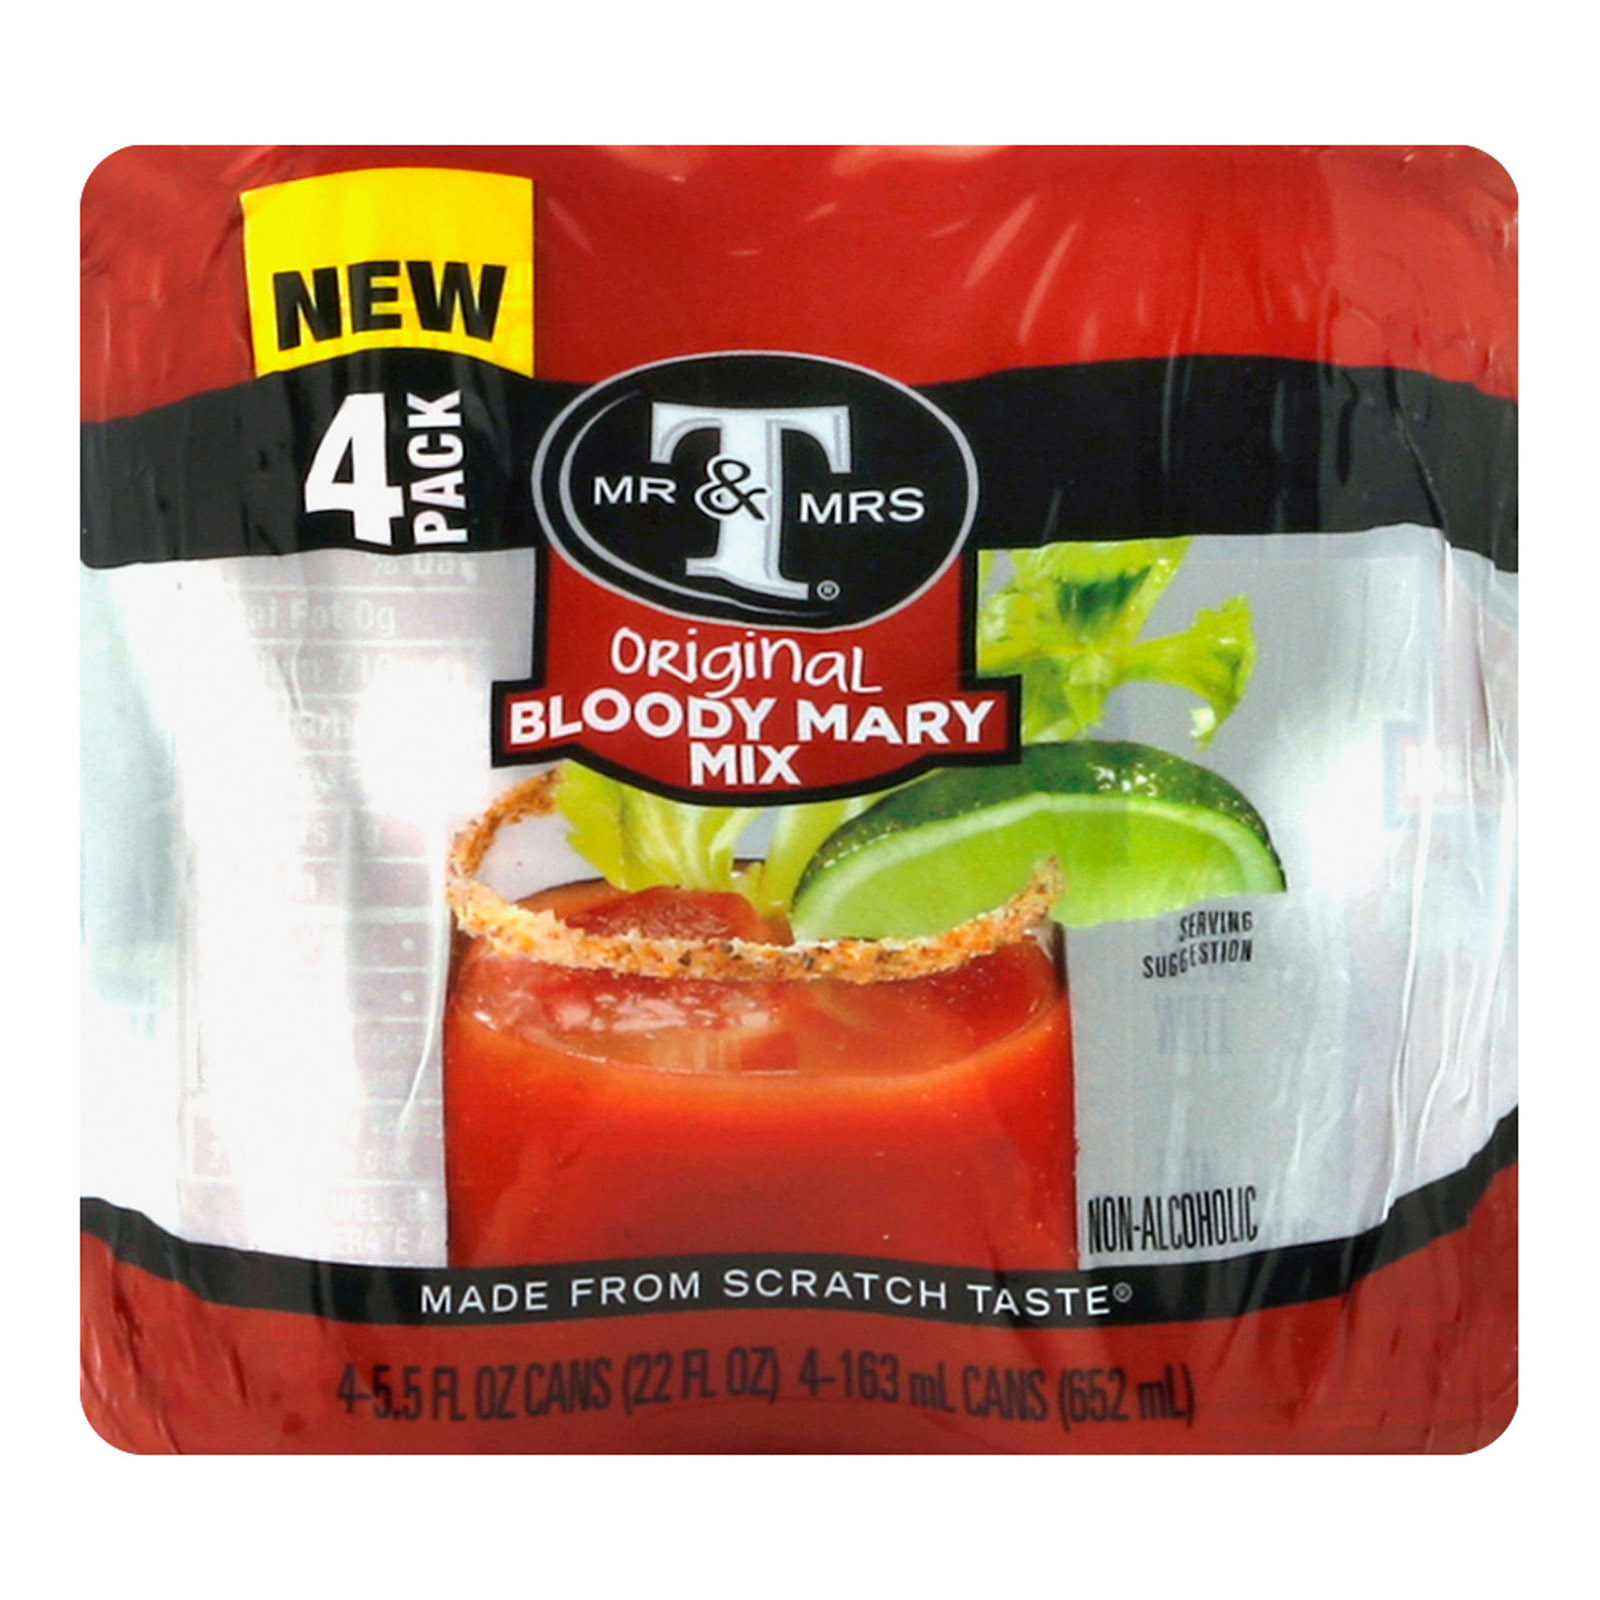 Mr and Mrs T Cocktail Mix - Bloody Mary - Case of 6 - 4/5.5 fl oz